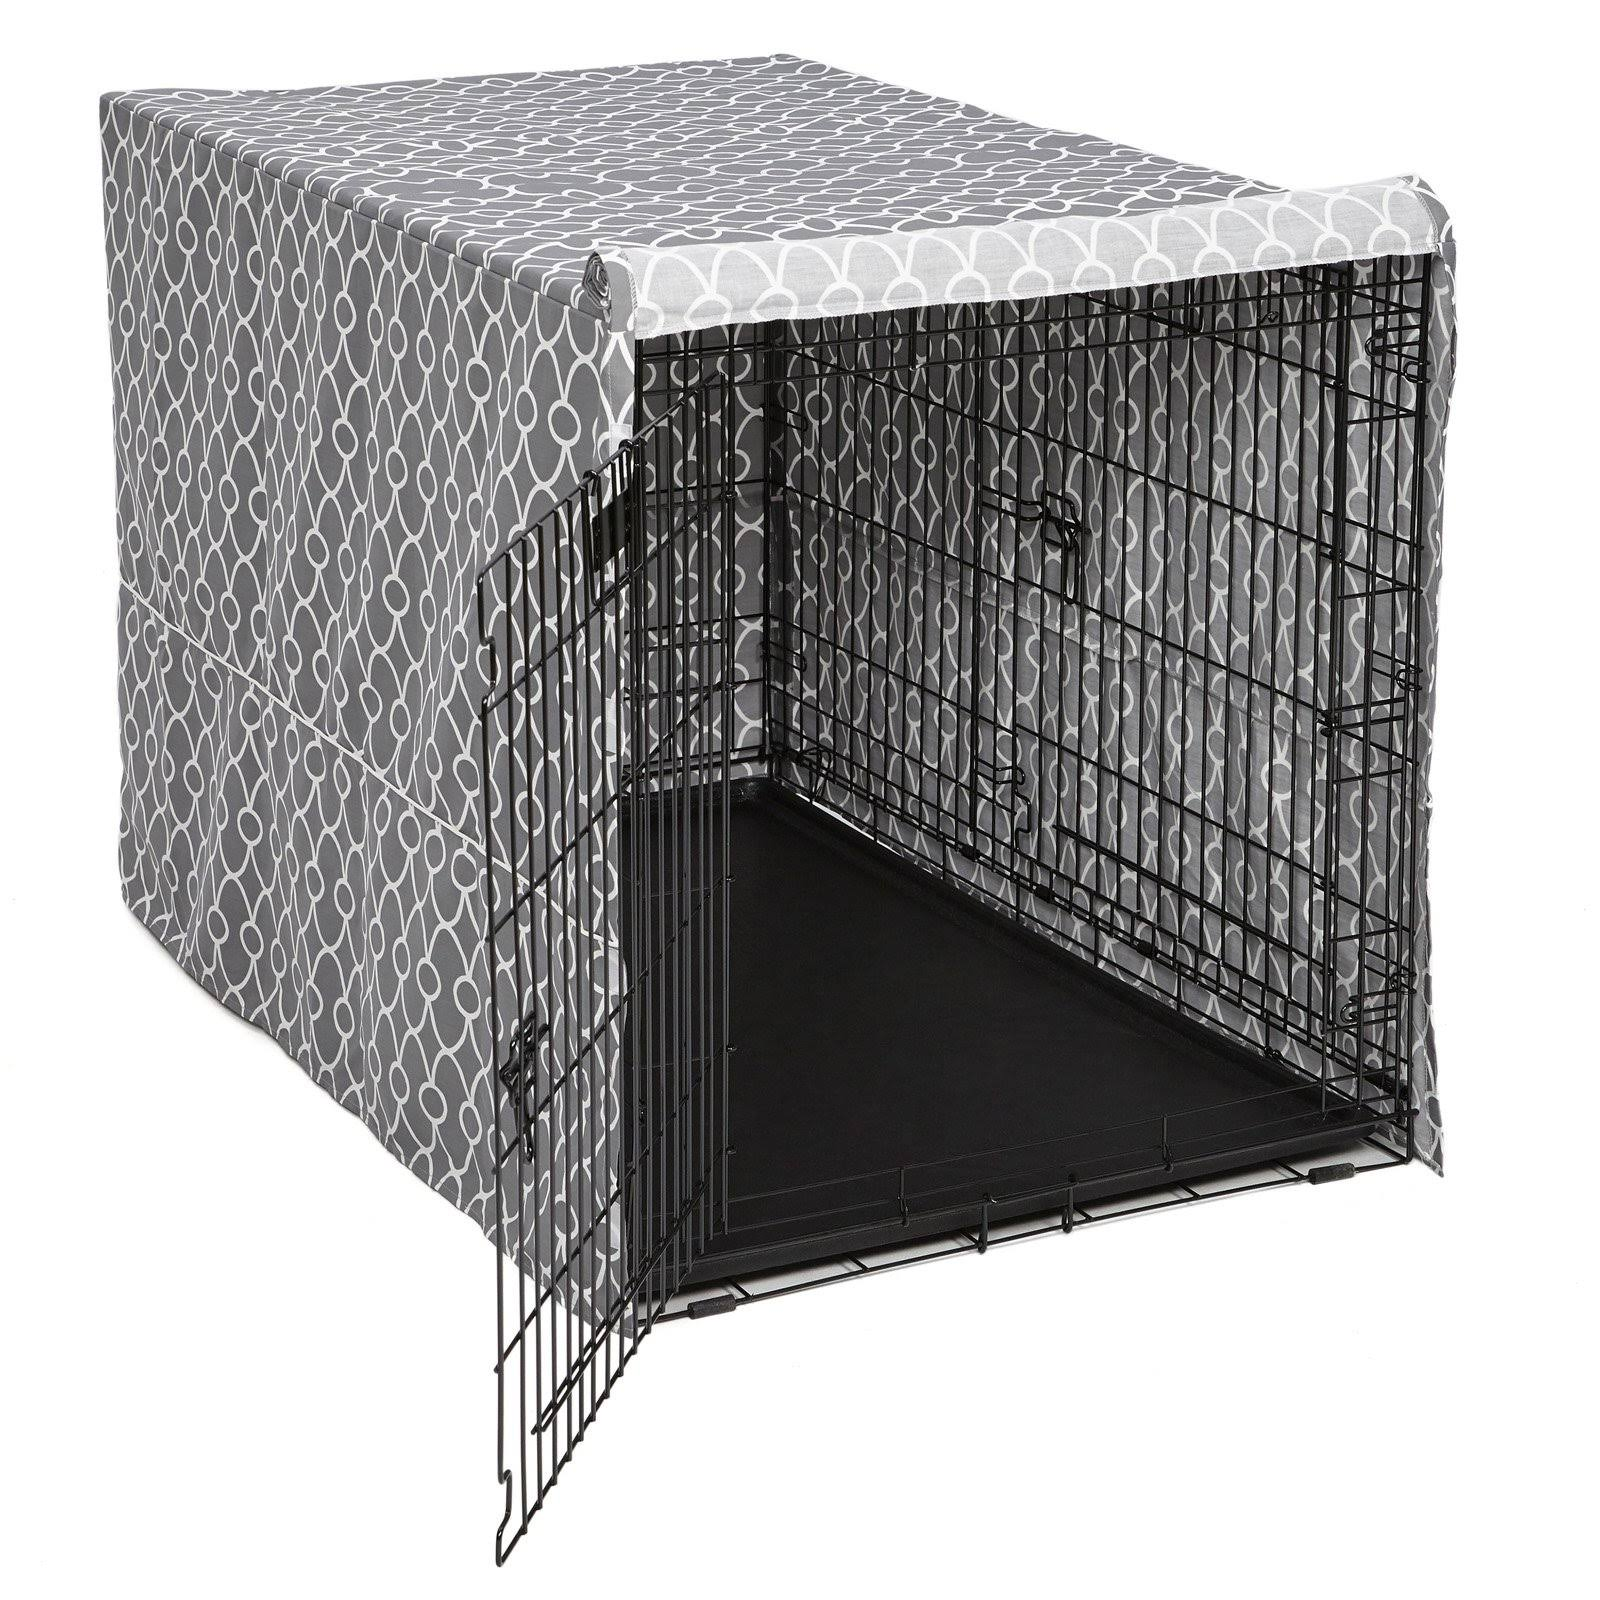 QuietTime Defender Covella Dog Crate Cover Gray